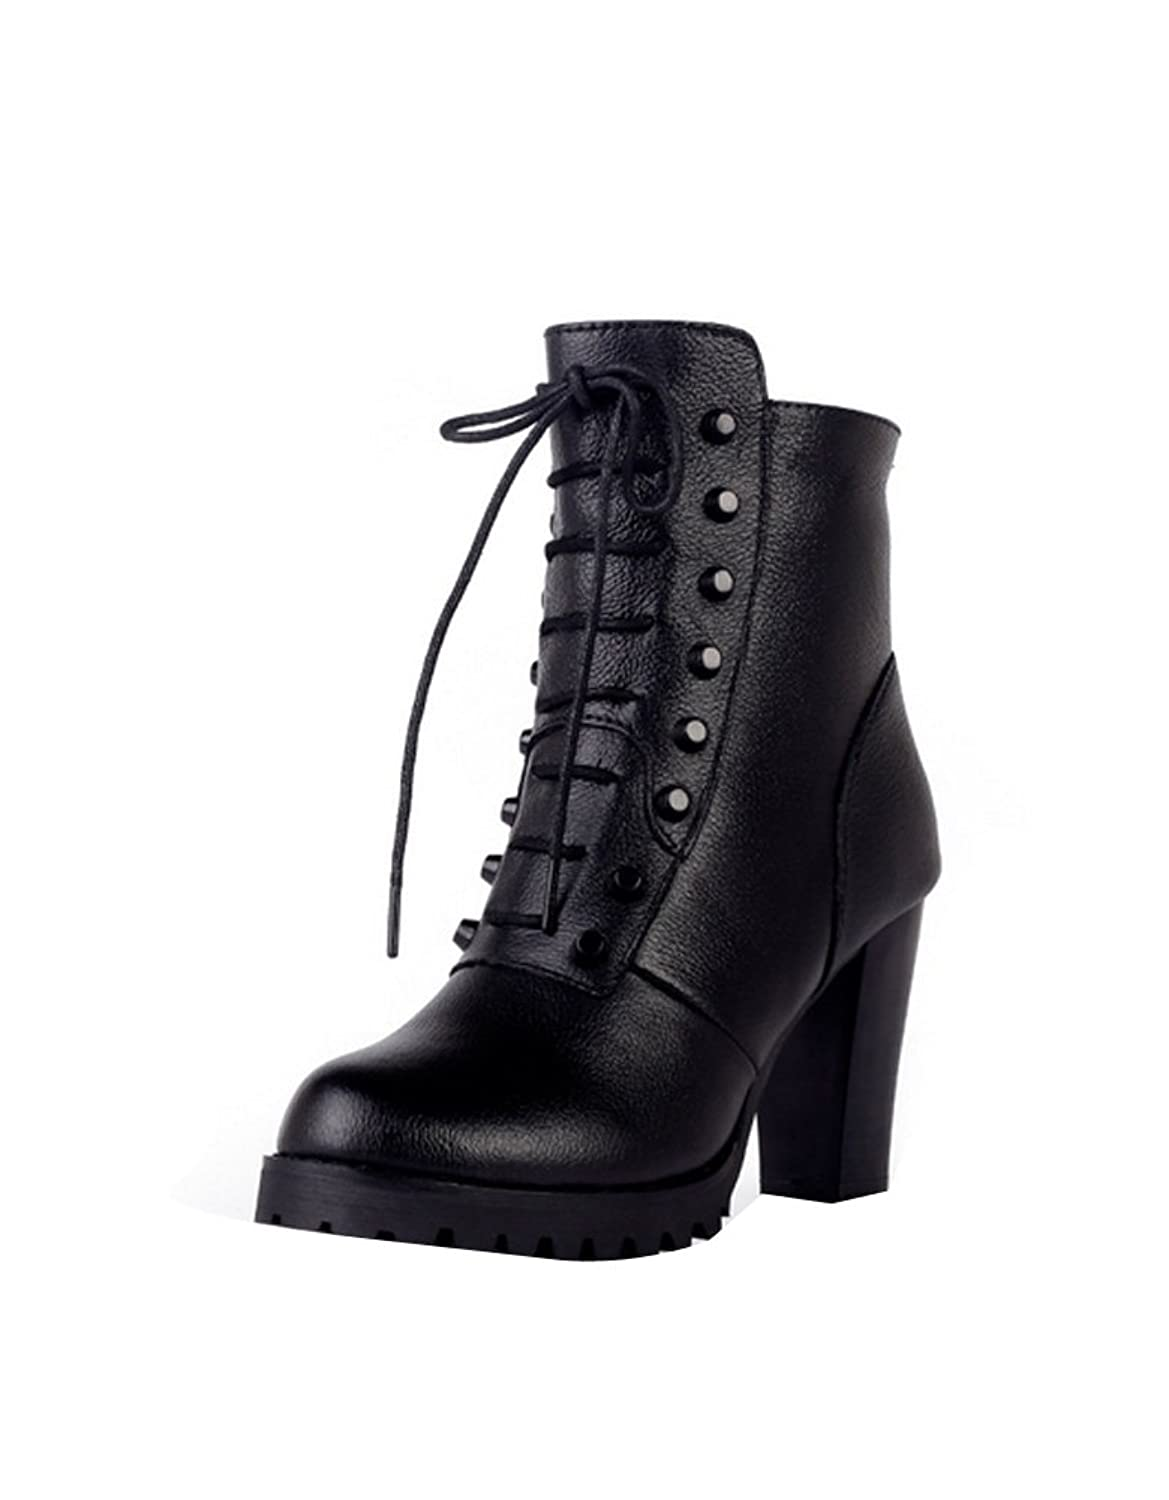 Ashlen Women's Black Chunky Mid Heel platform Lace Up Leather Ankle Booties